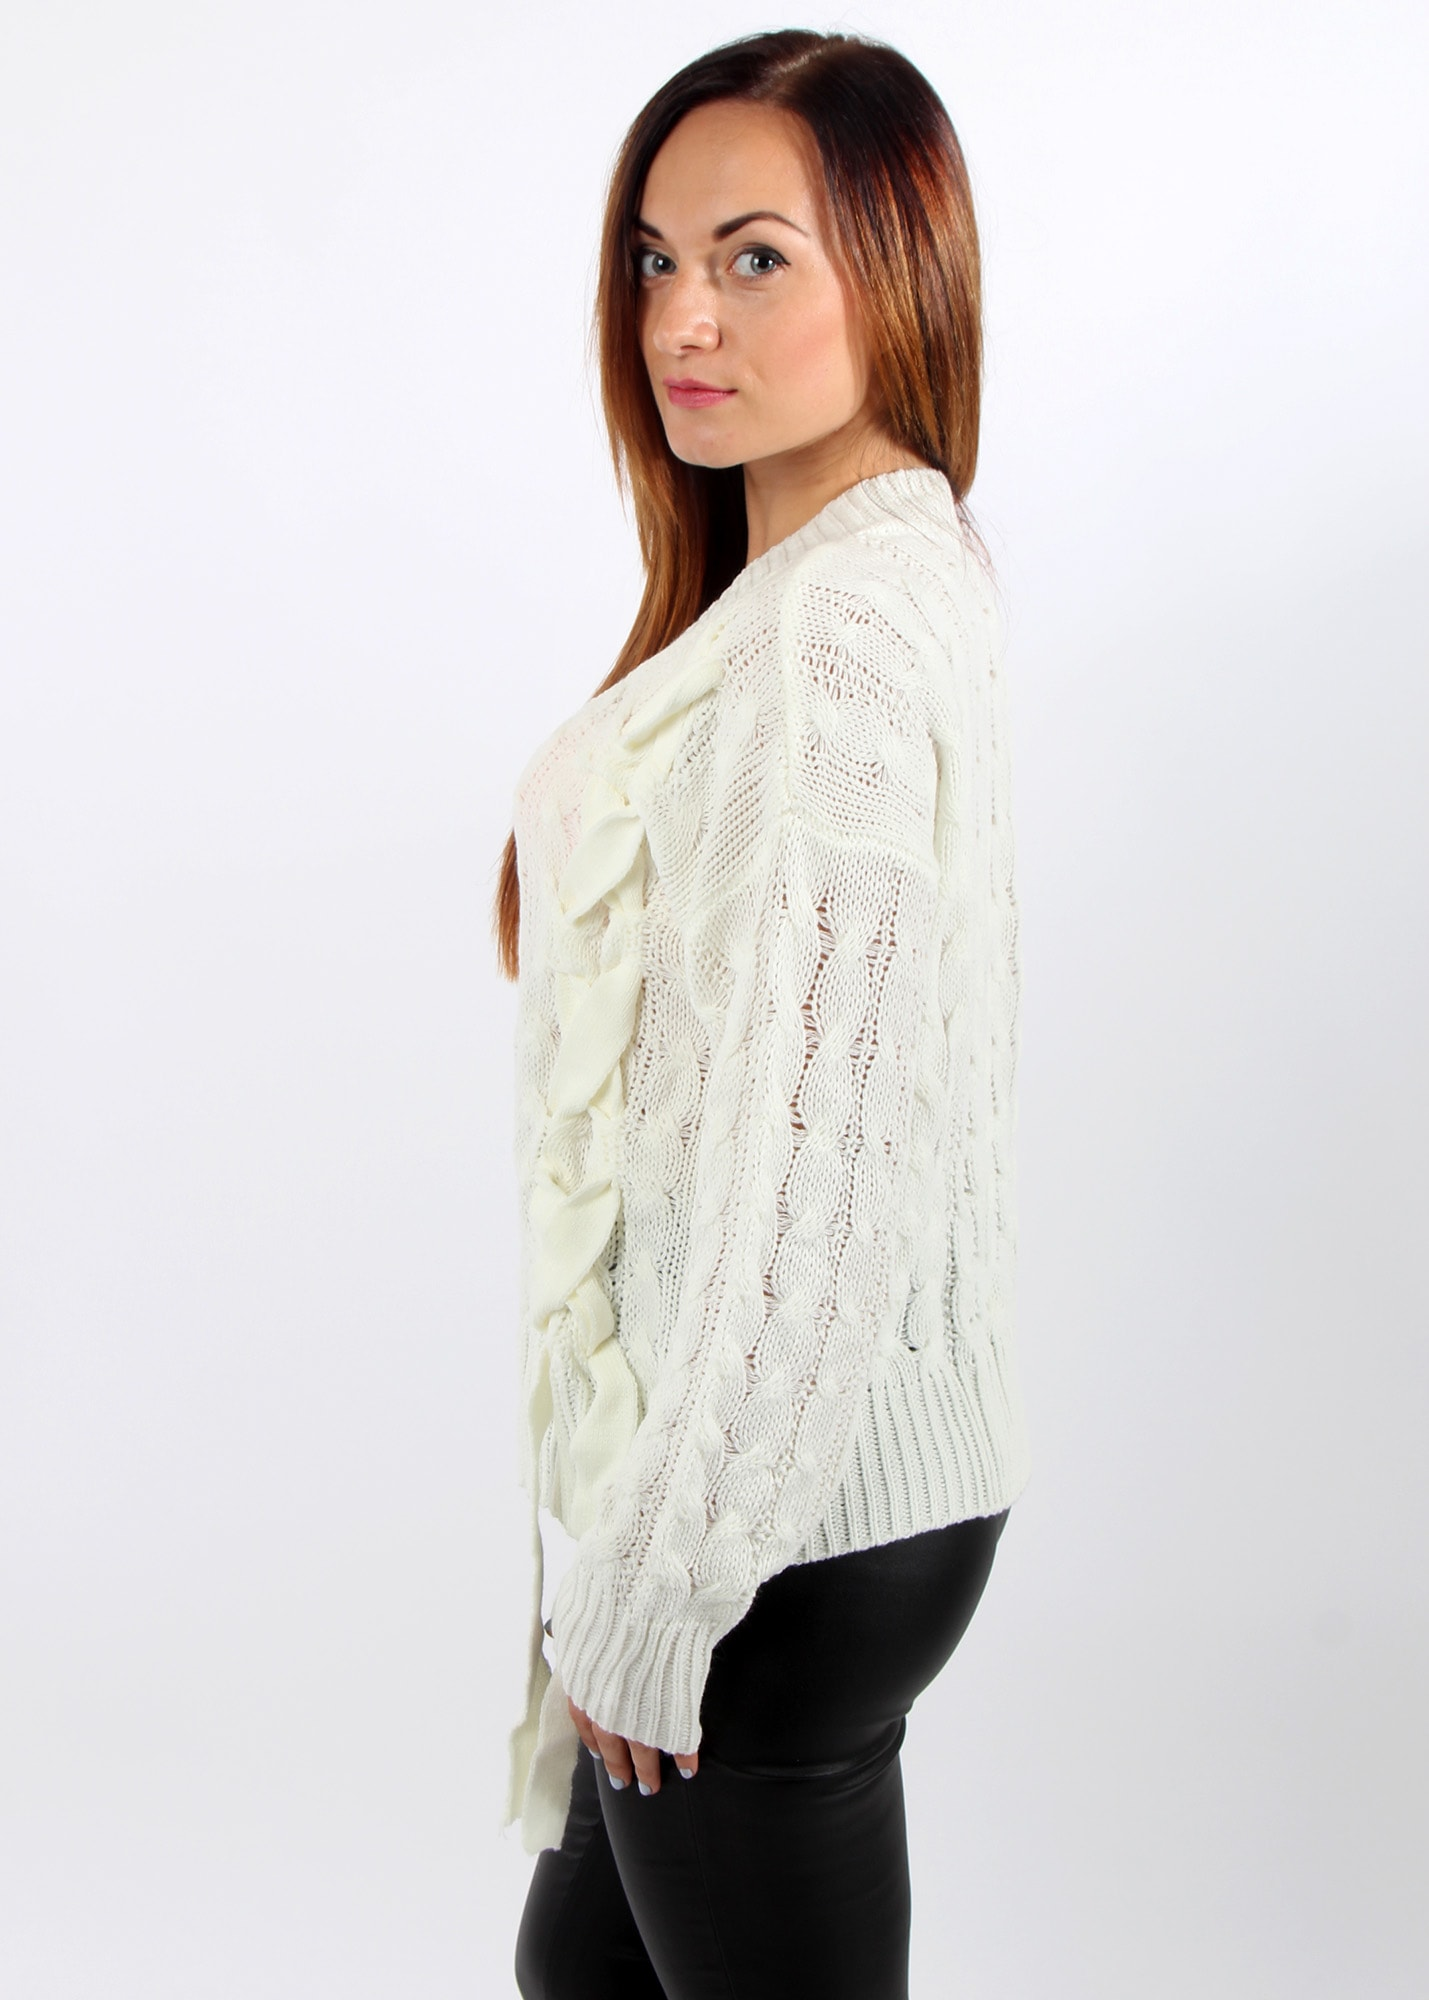 Find great deals on eBay for madison sweater. Shop with confidence.